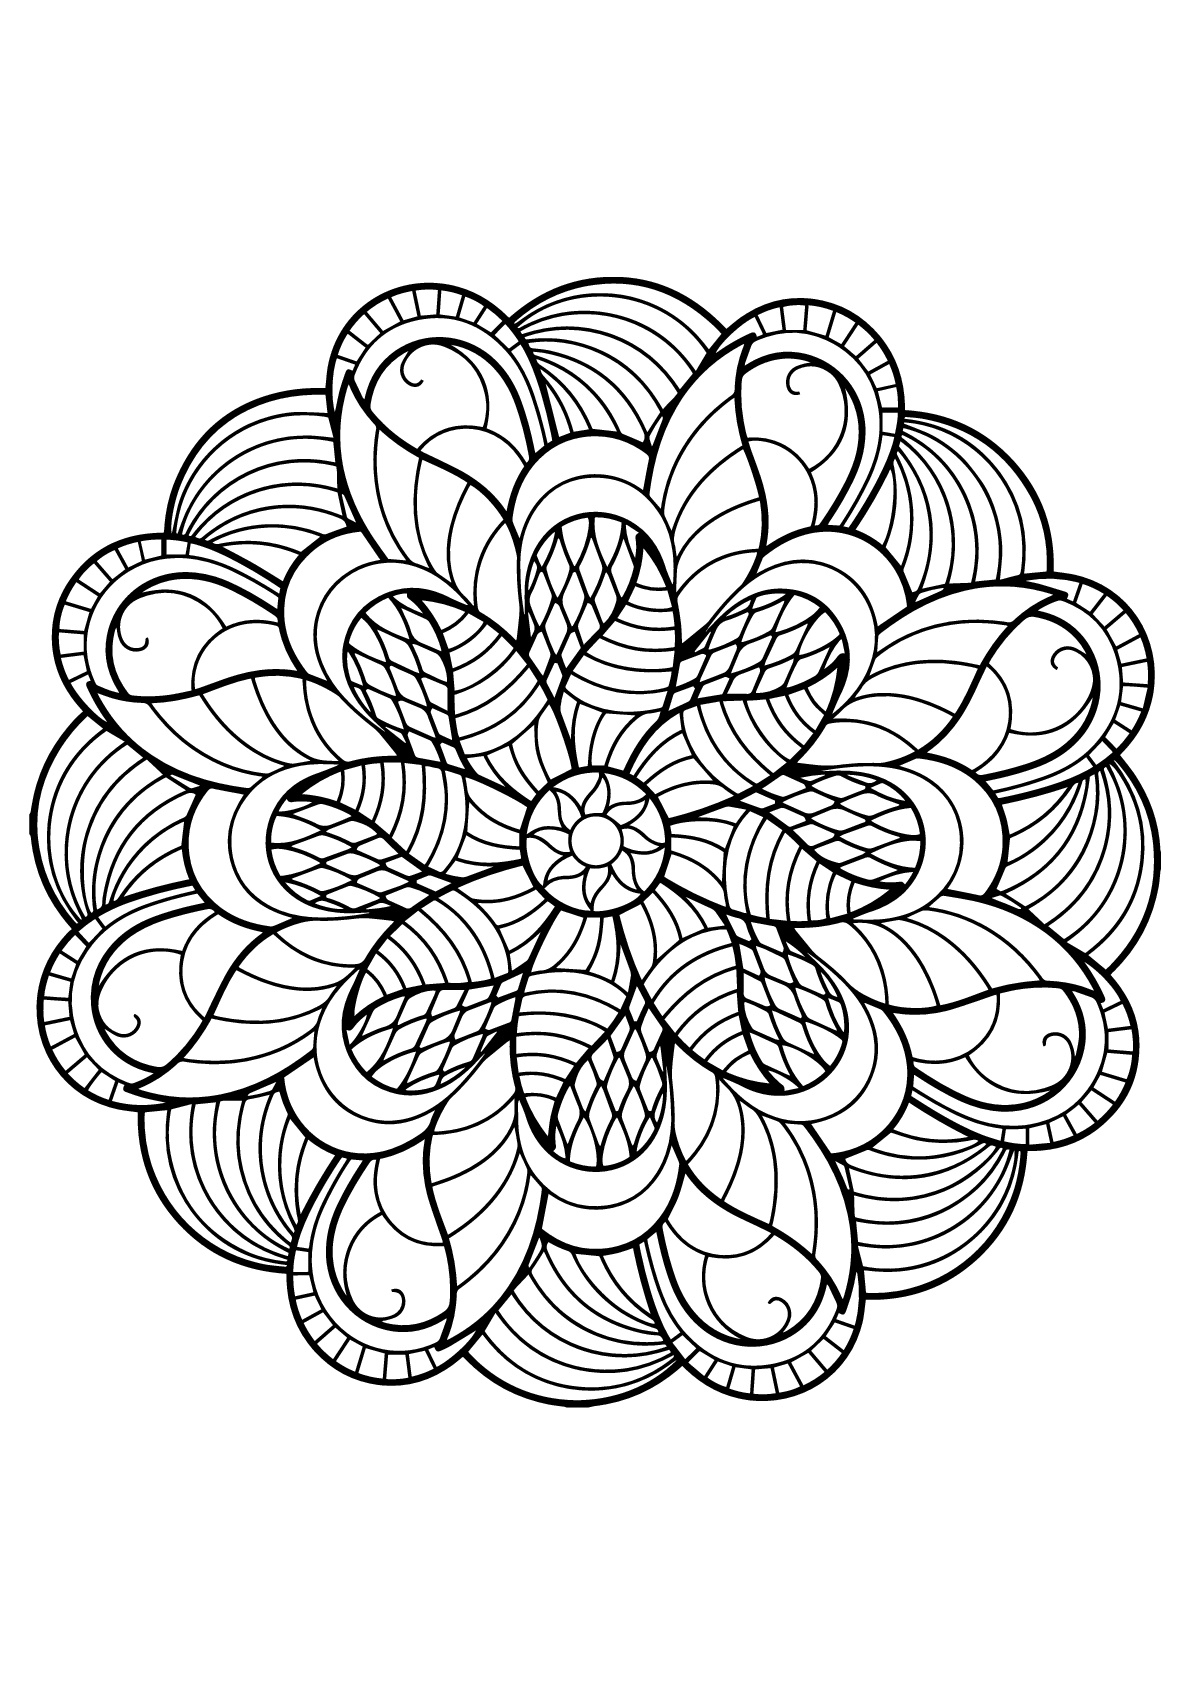 Very original Mandala from Free Coloring book for adults